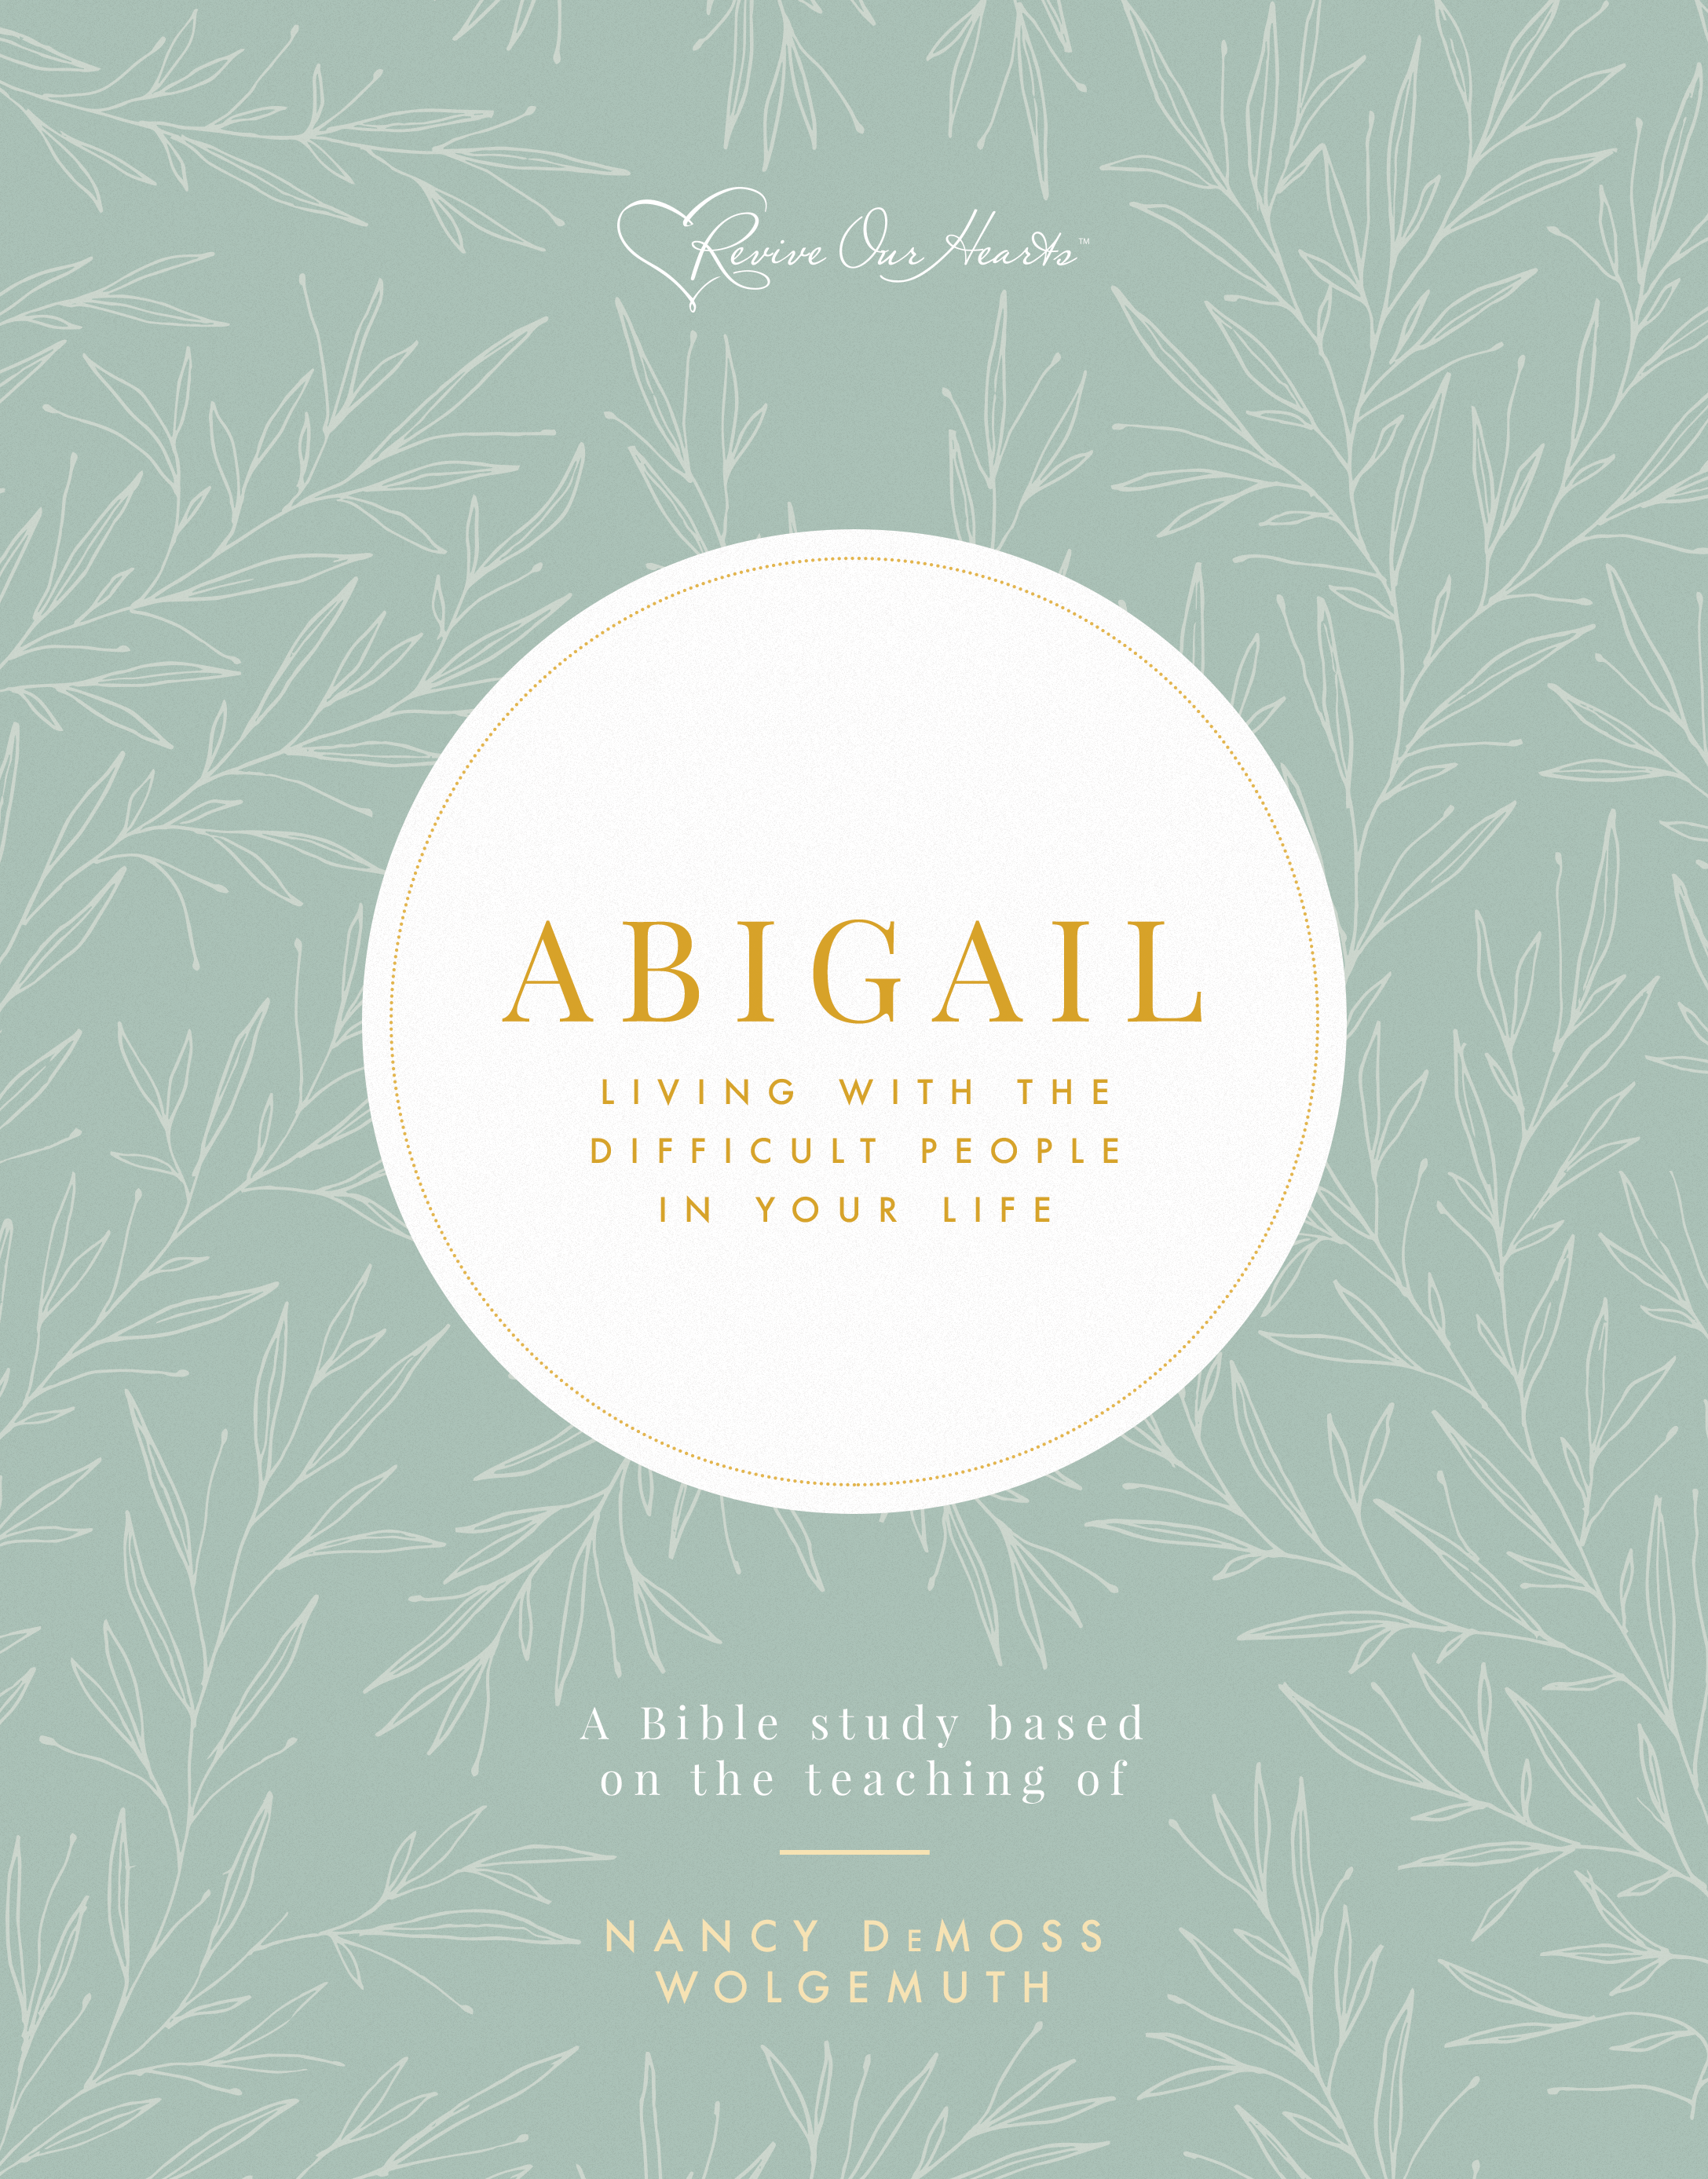 Abigail: Living with the Difficult People in Your Life